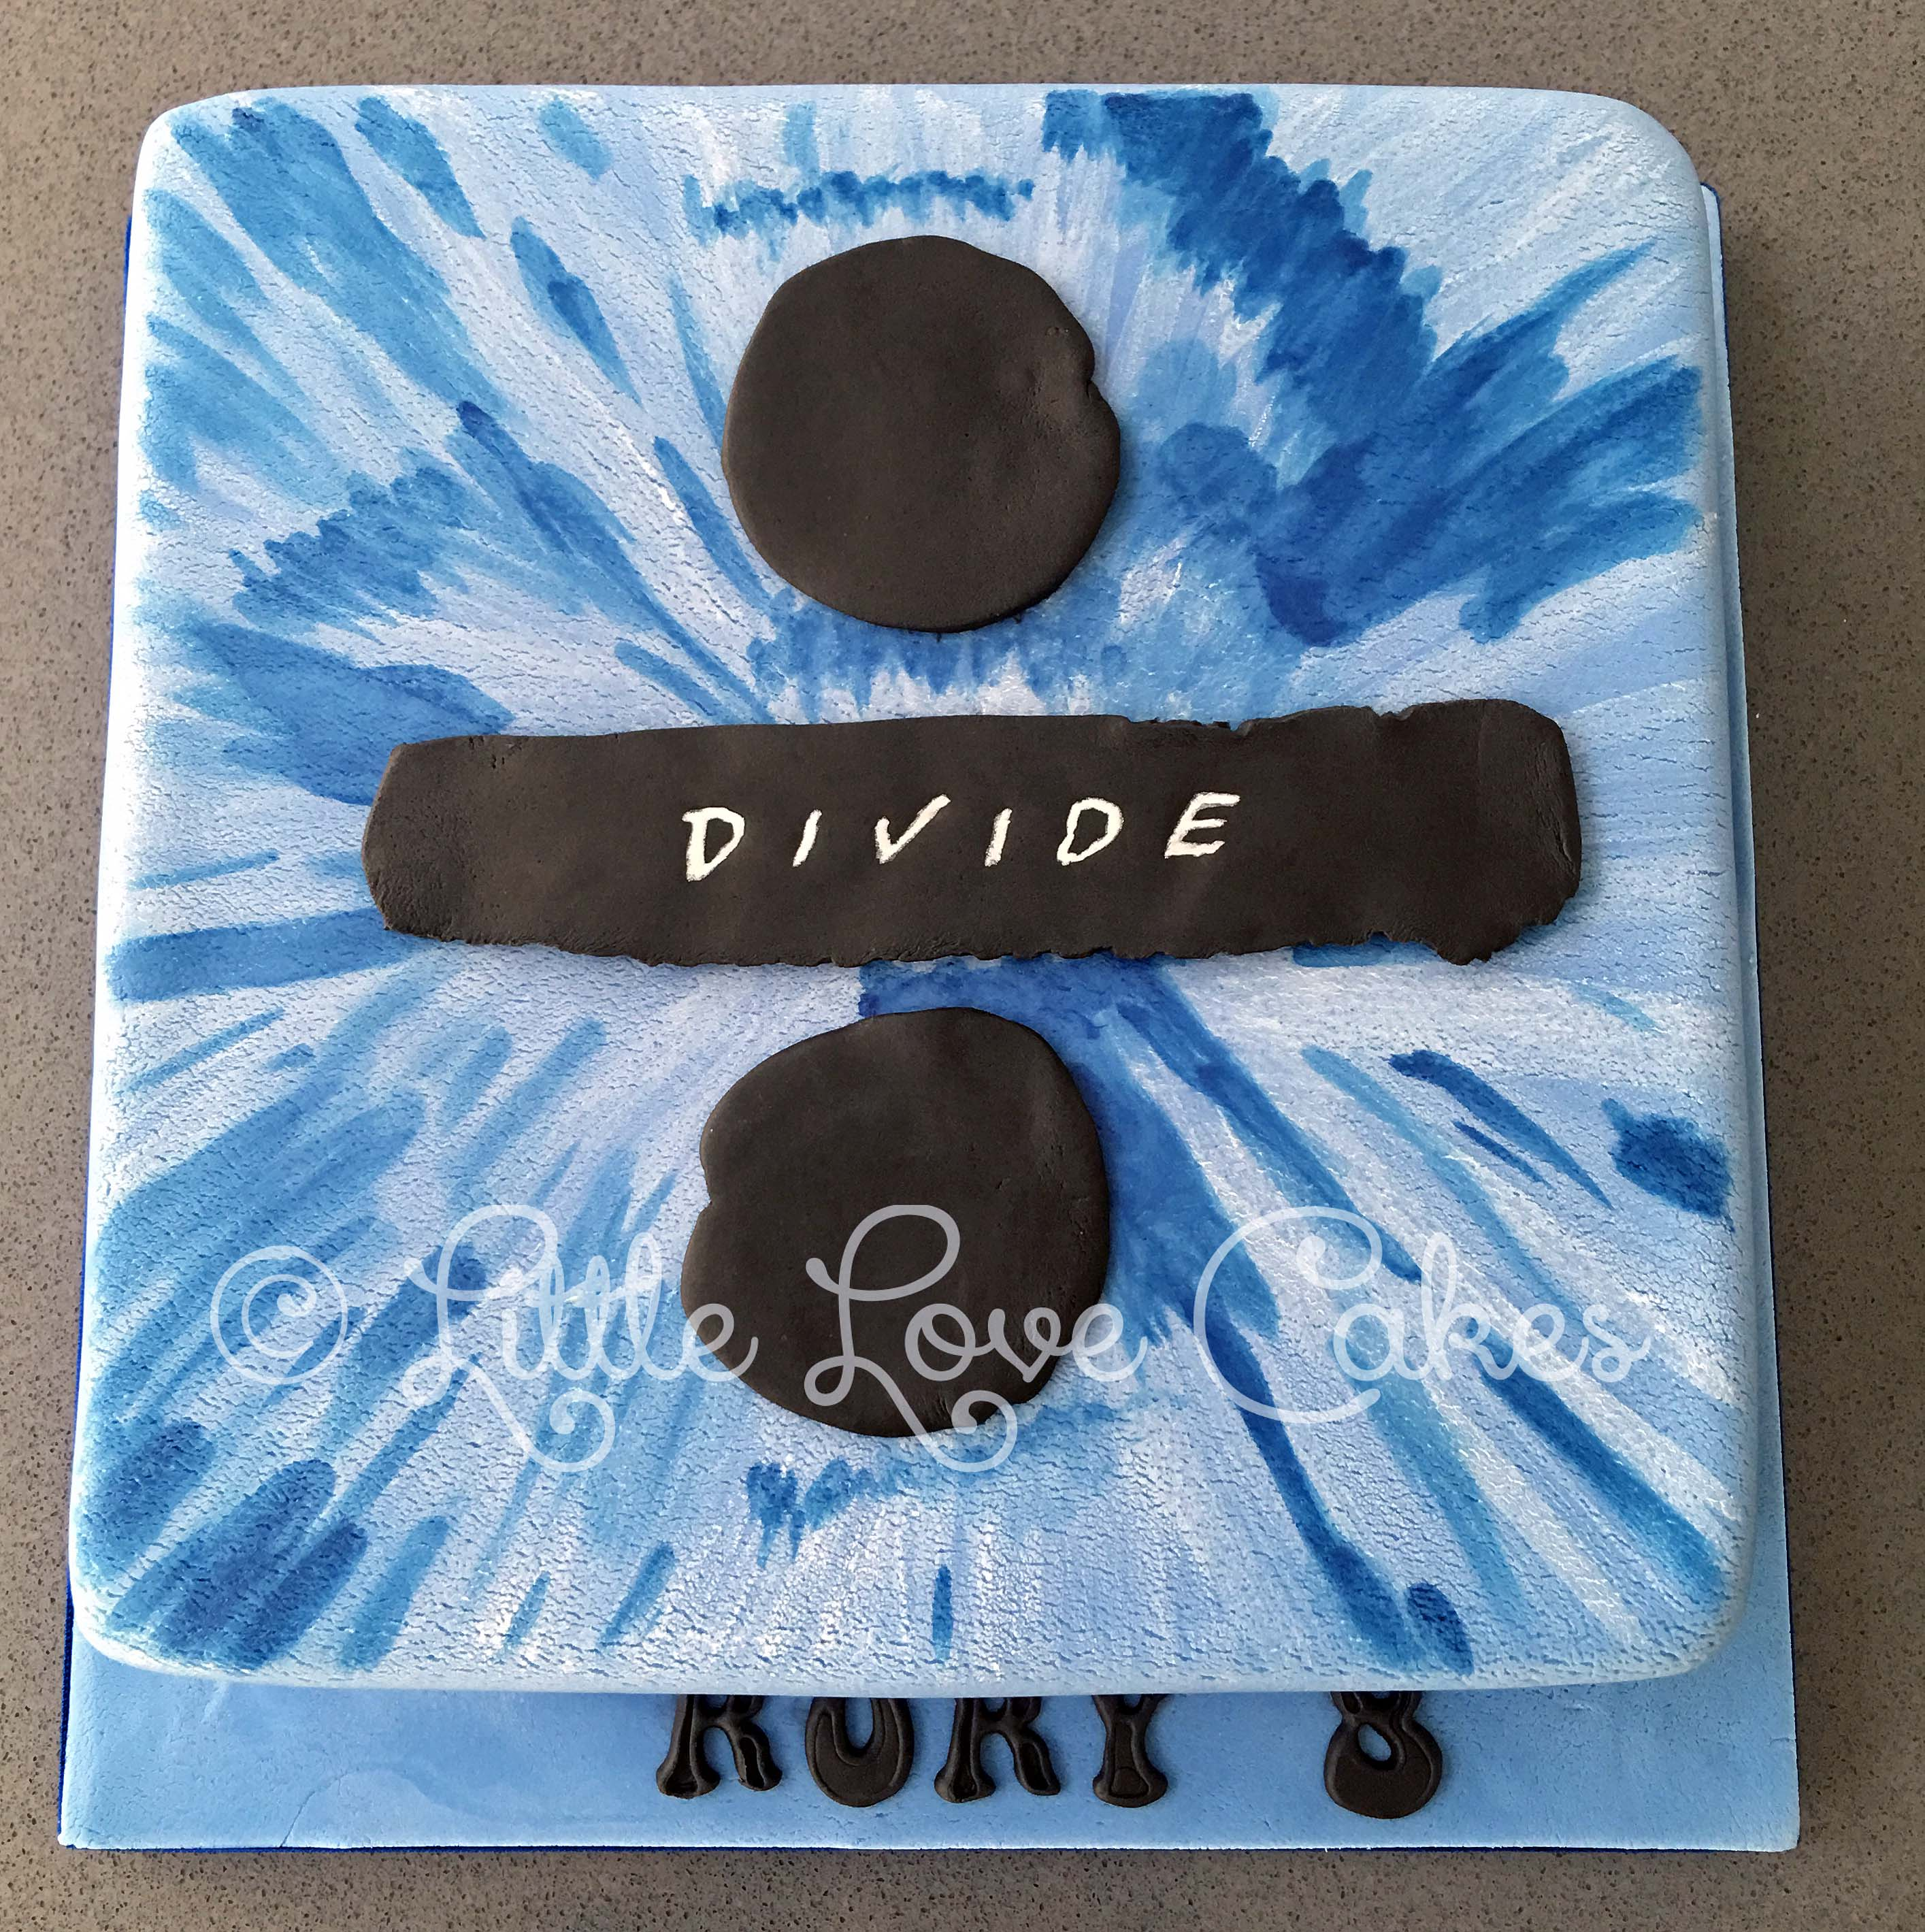 Ed Sheeran Divide album cover cake